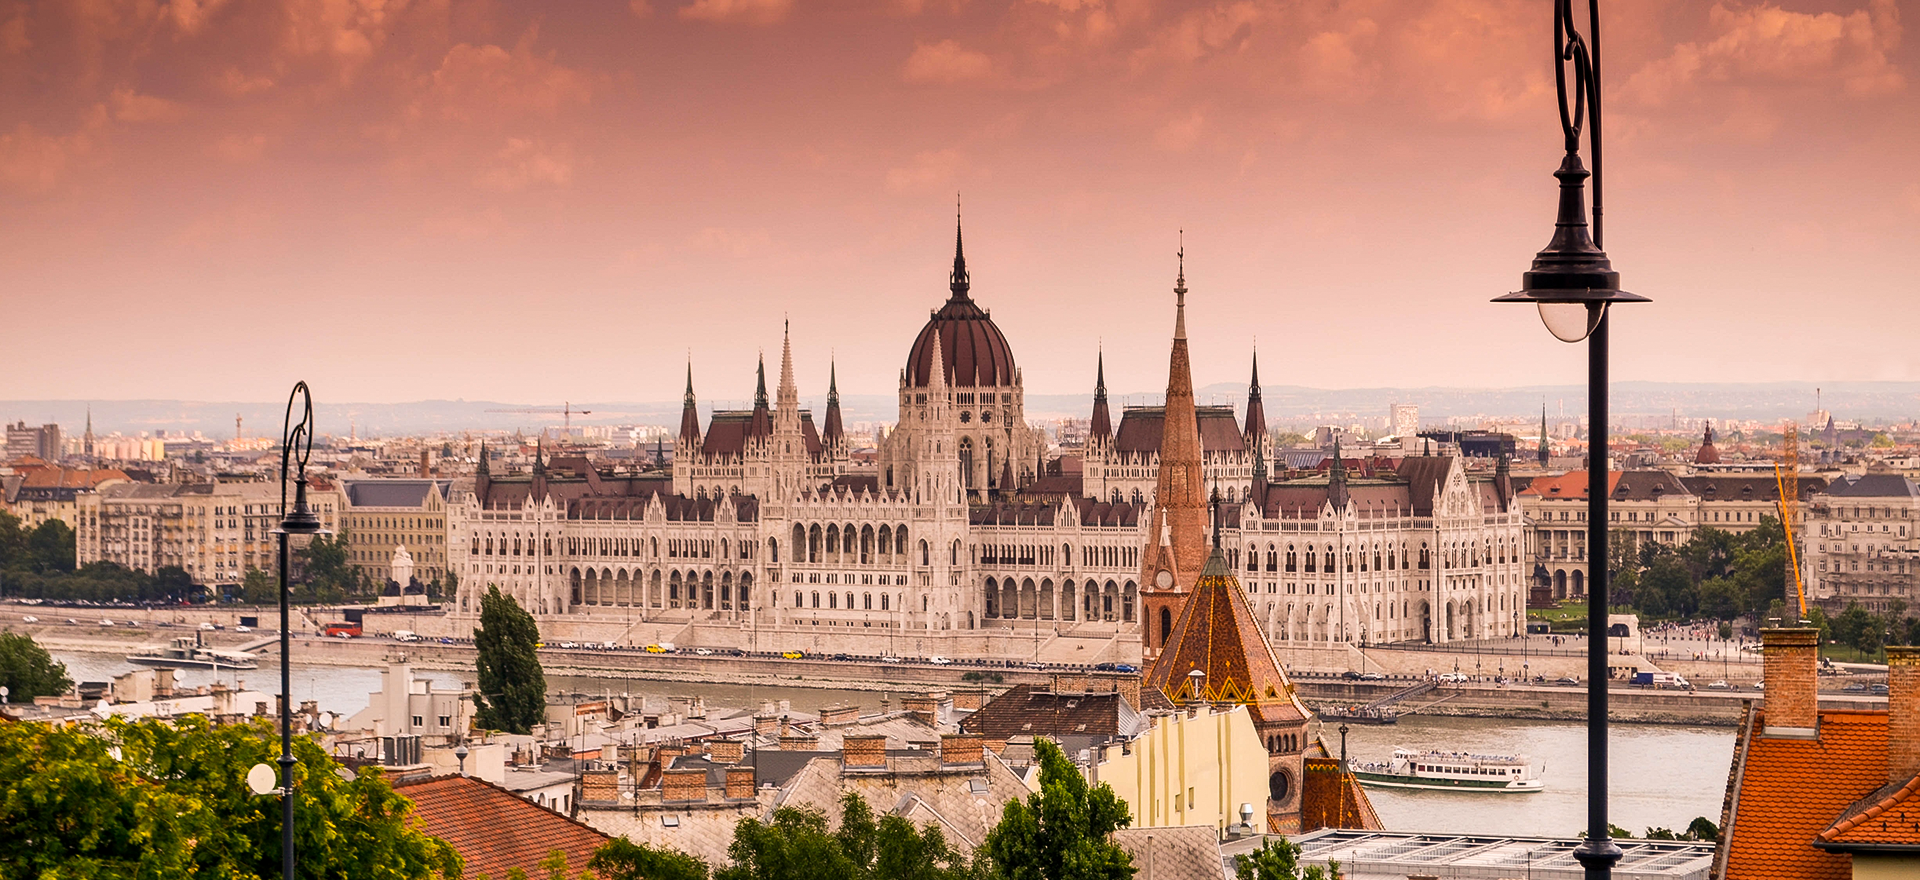 Budapest, Hungary at sunset. A white cathedral building along a river.